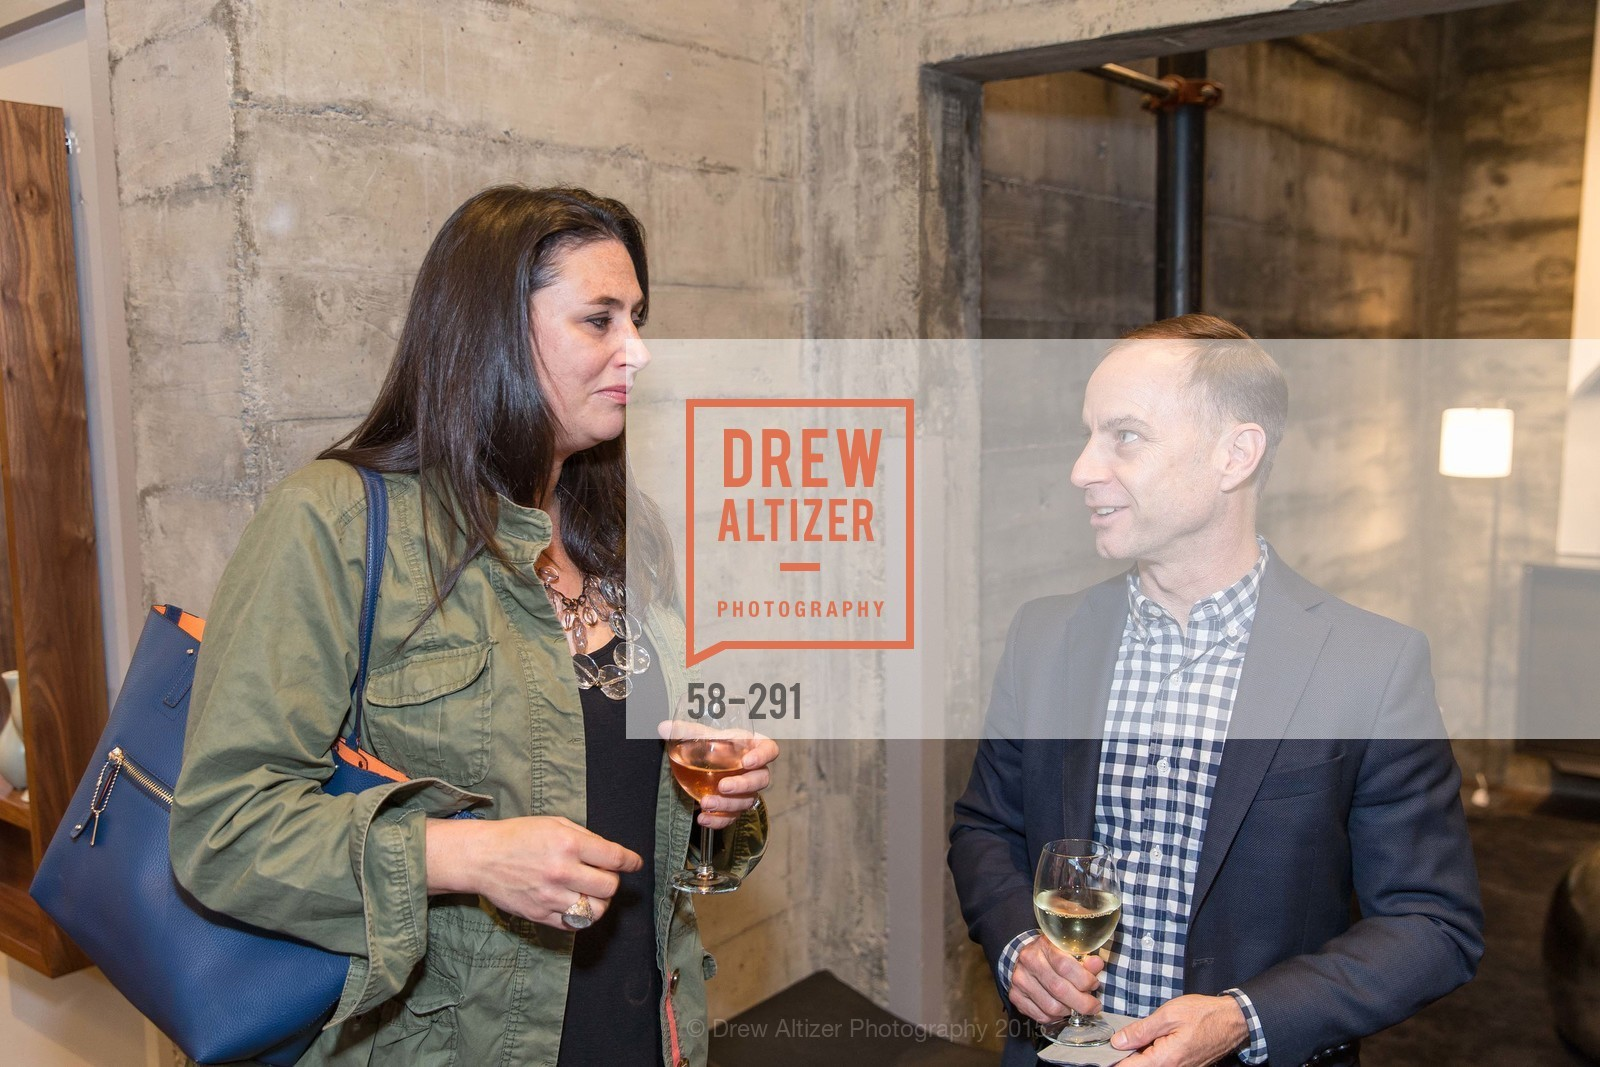 Extras, SFC&G for the Discover New Design Series with Room & Board and Alisa Carroll, September 16th, 2015, Photo,Drew Altizer, Drew Altizer Photography, full-service event agency, private events, San Francisco photographer, photographer California